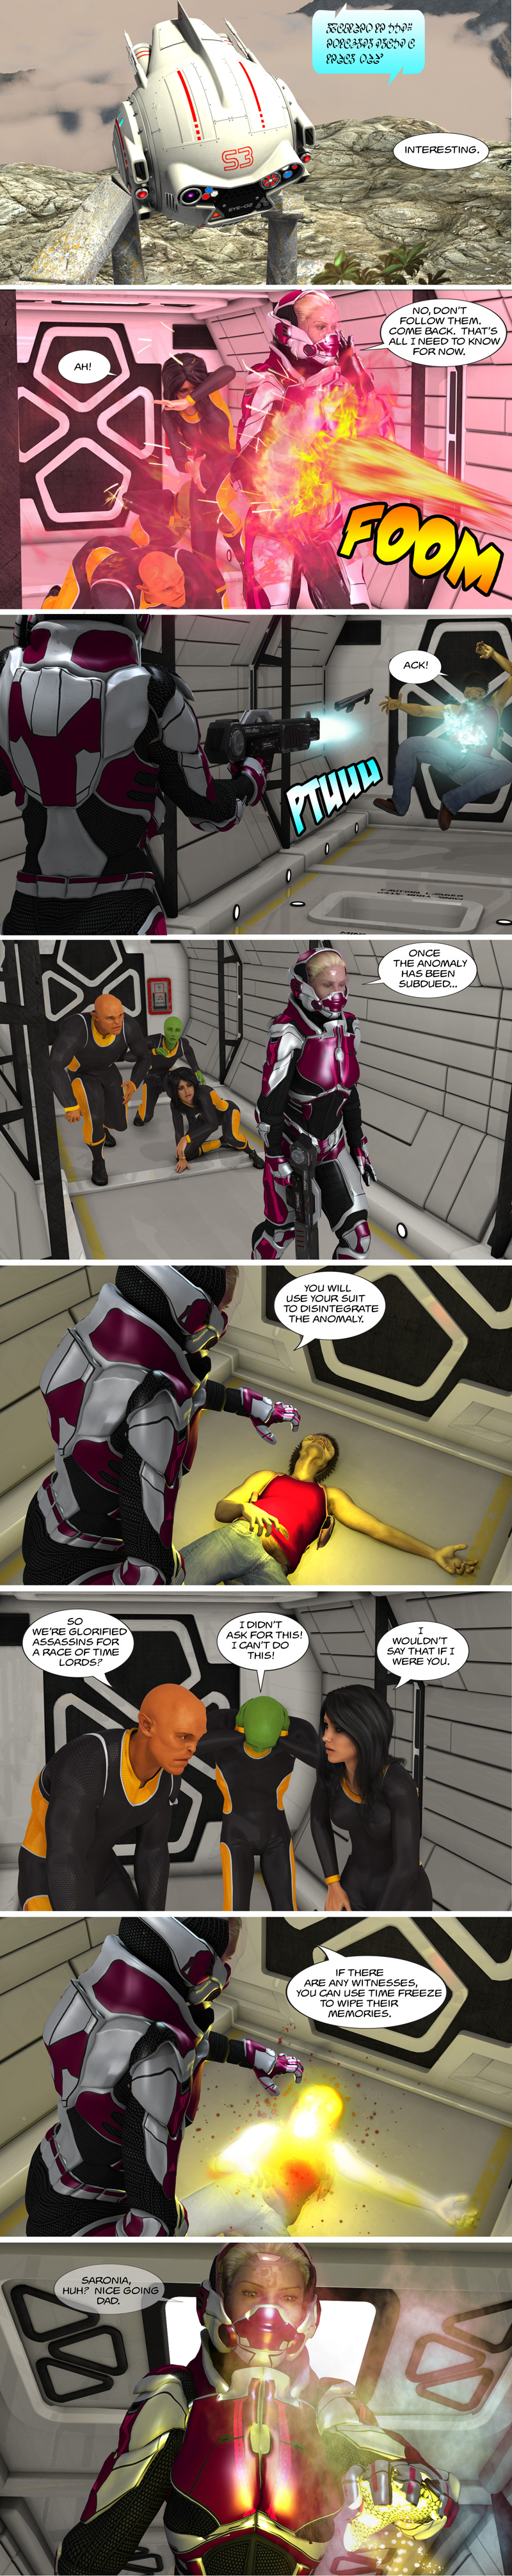 Chapter 11, page 44